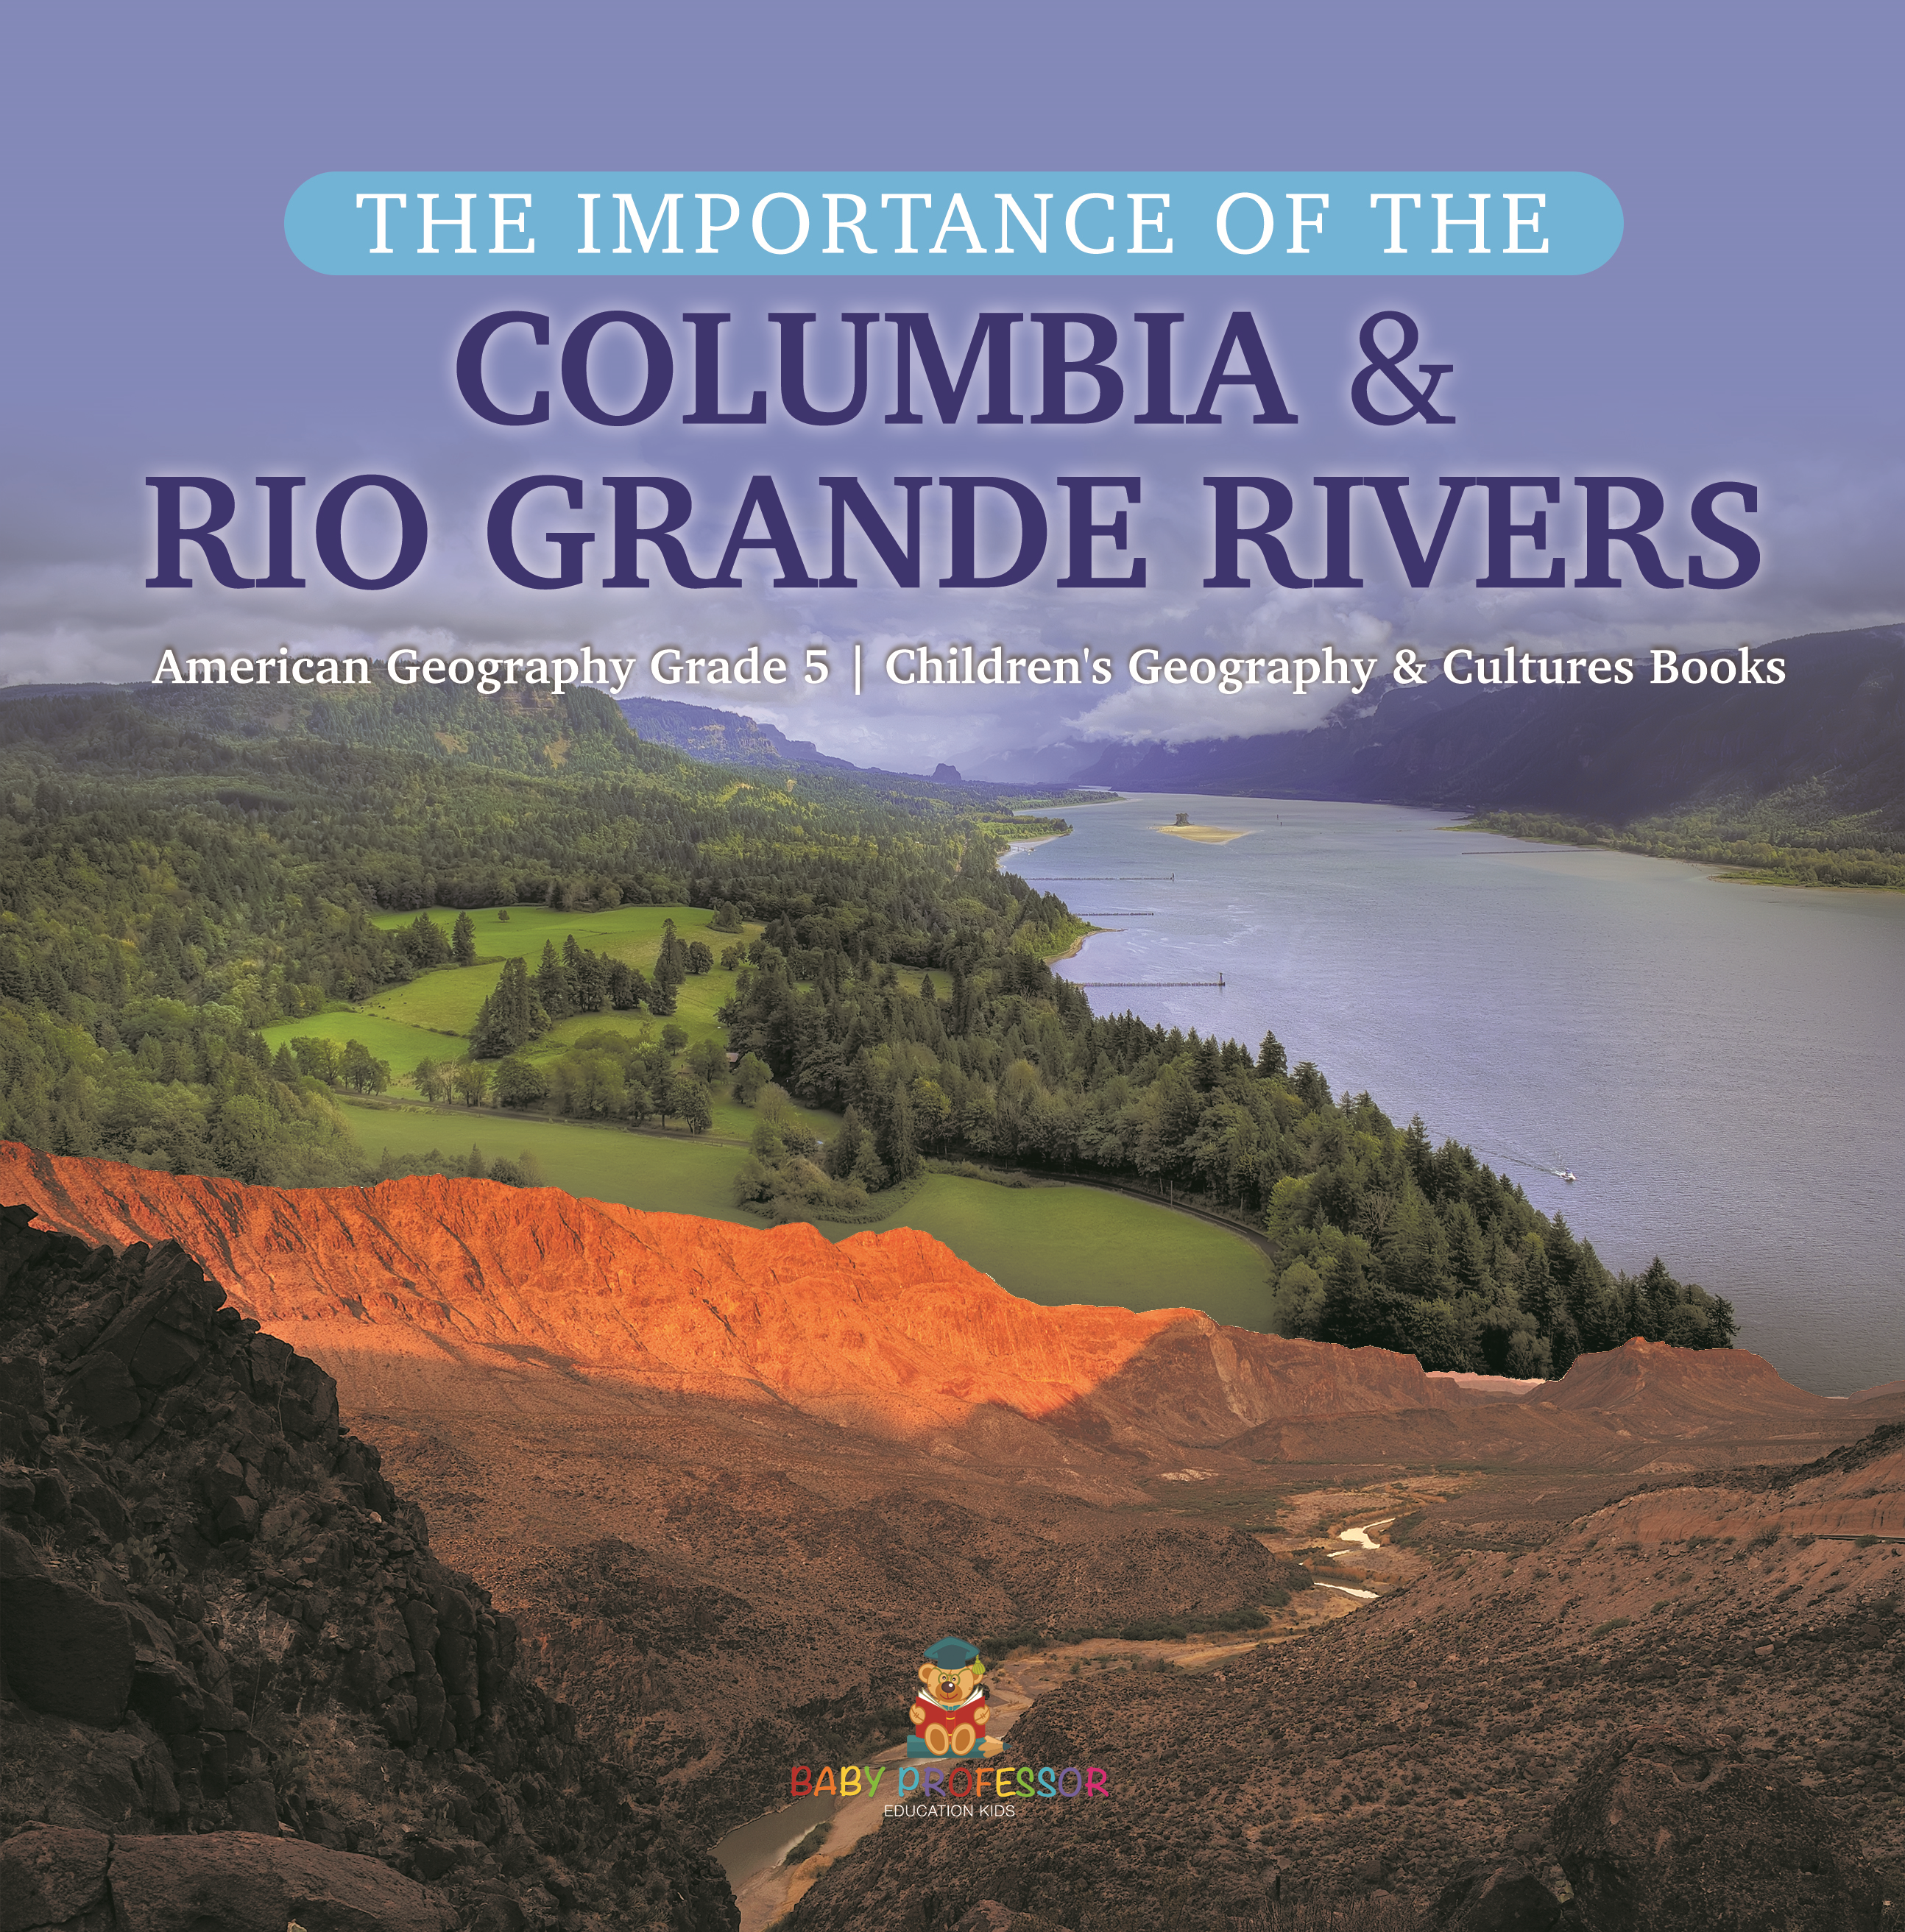 The Importance of the Columbia & Rio Grande Rivers | American Geography Grade 5 | Children's Geography & Cultures Books